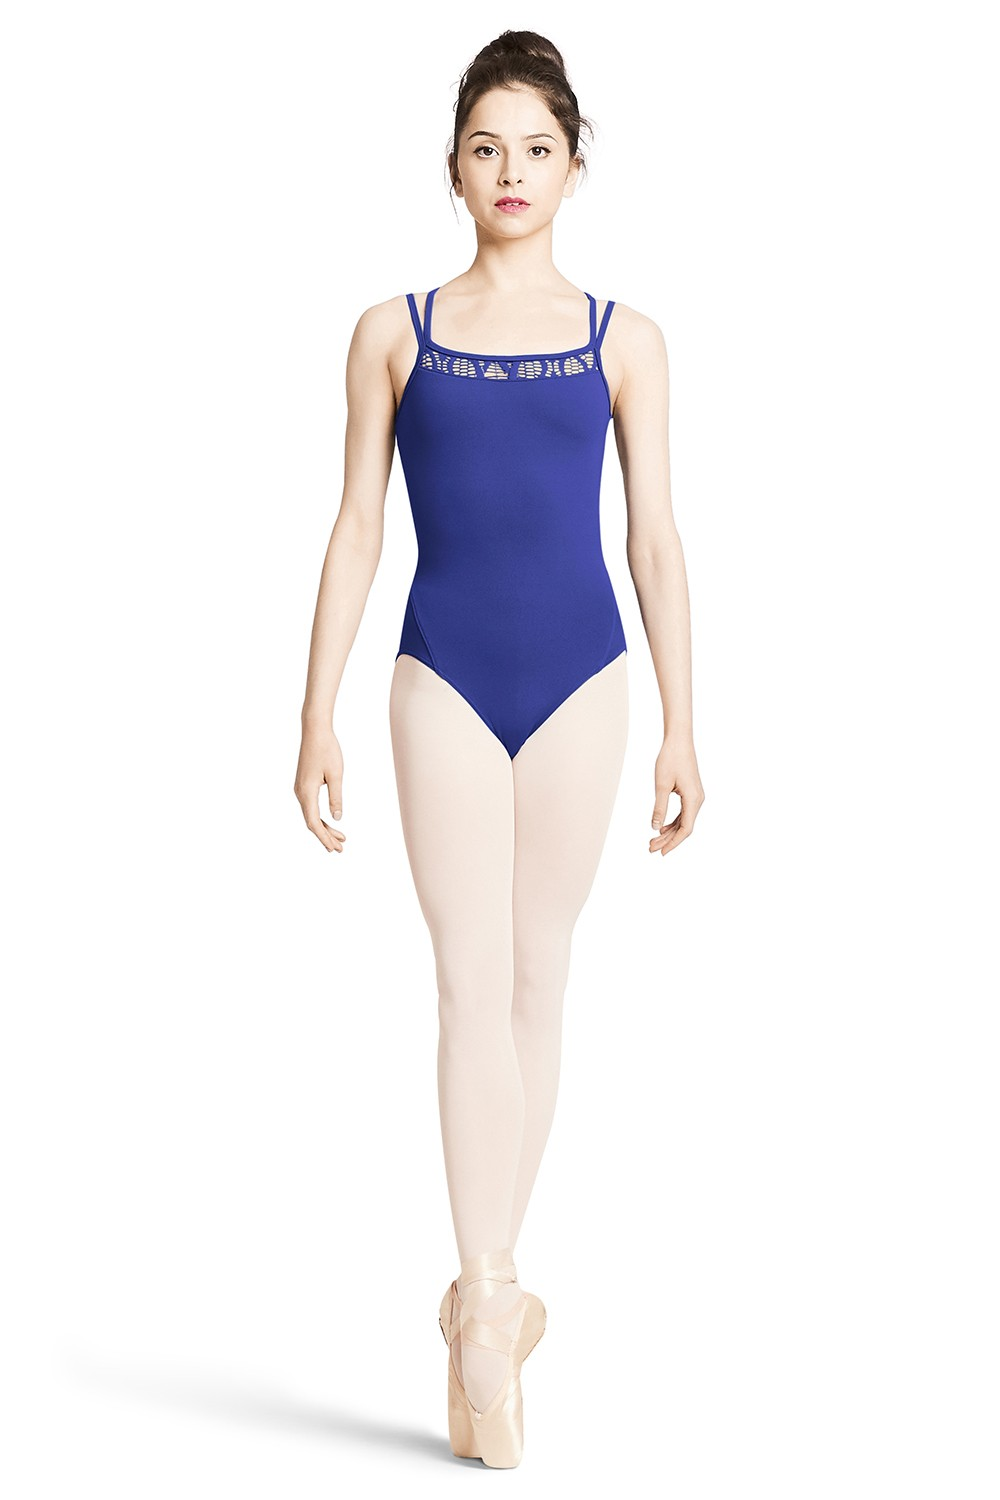 Body Con Spalline Sottili Doppie Women's Dance Leotards